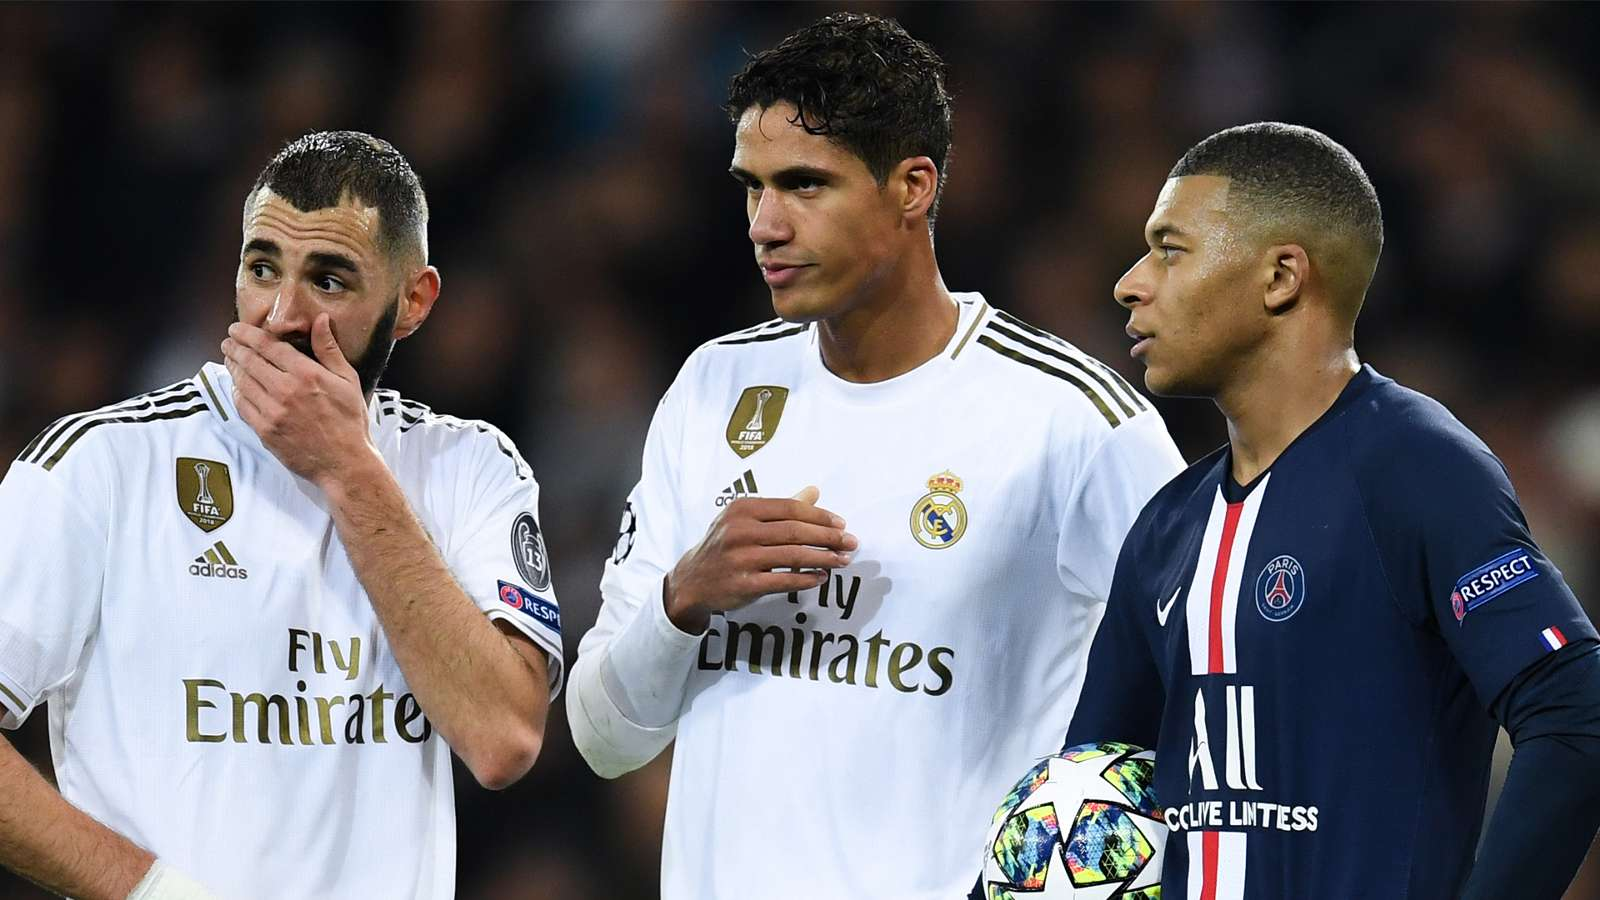 Raphaël Varane out zidane's selection against Alaves